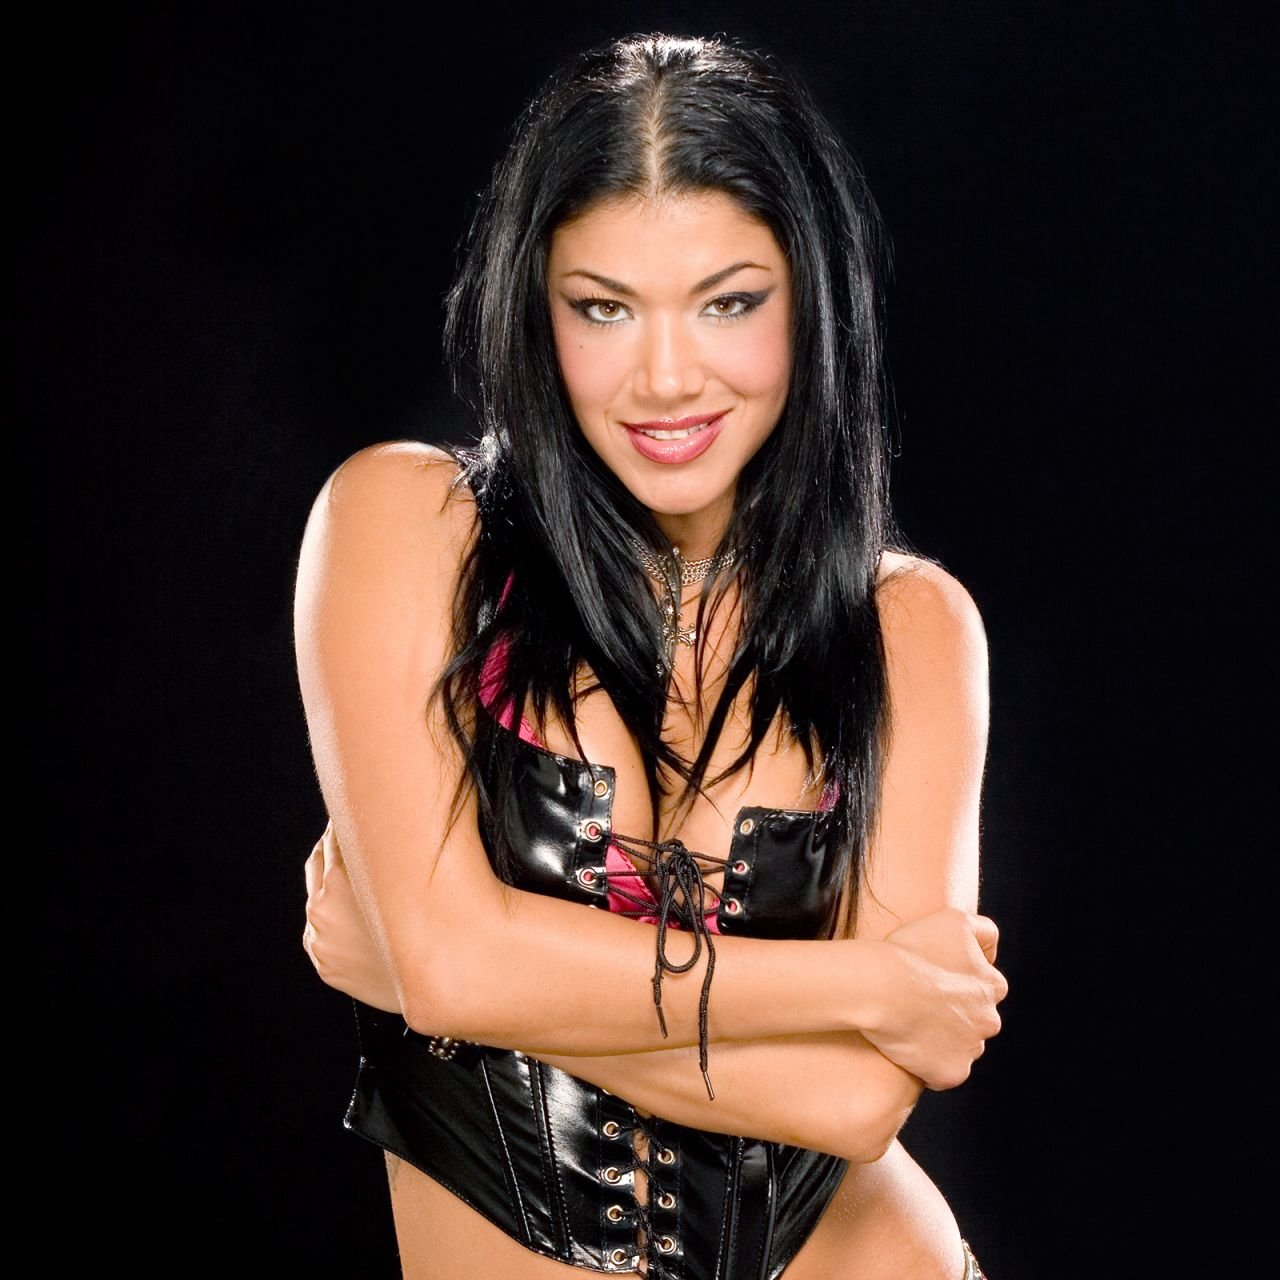 Rosa Mendes nudes (86 photo), Pussy, Hot, Twitter, butt 2019